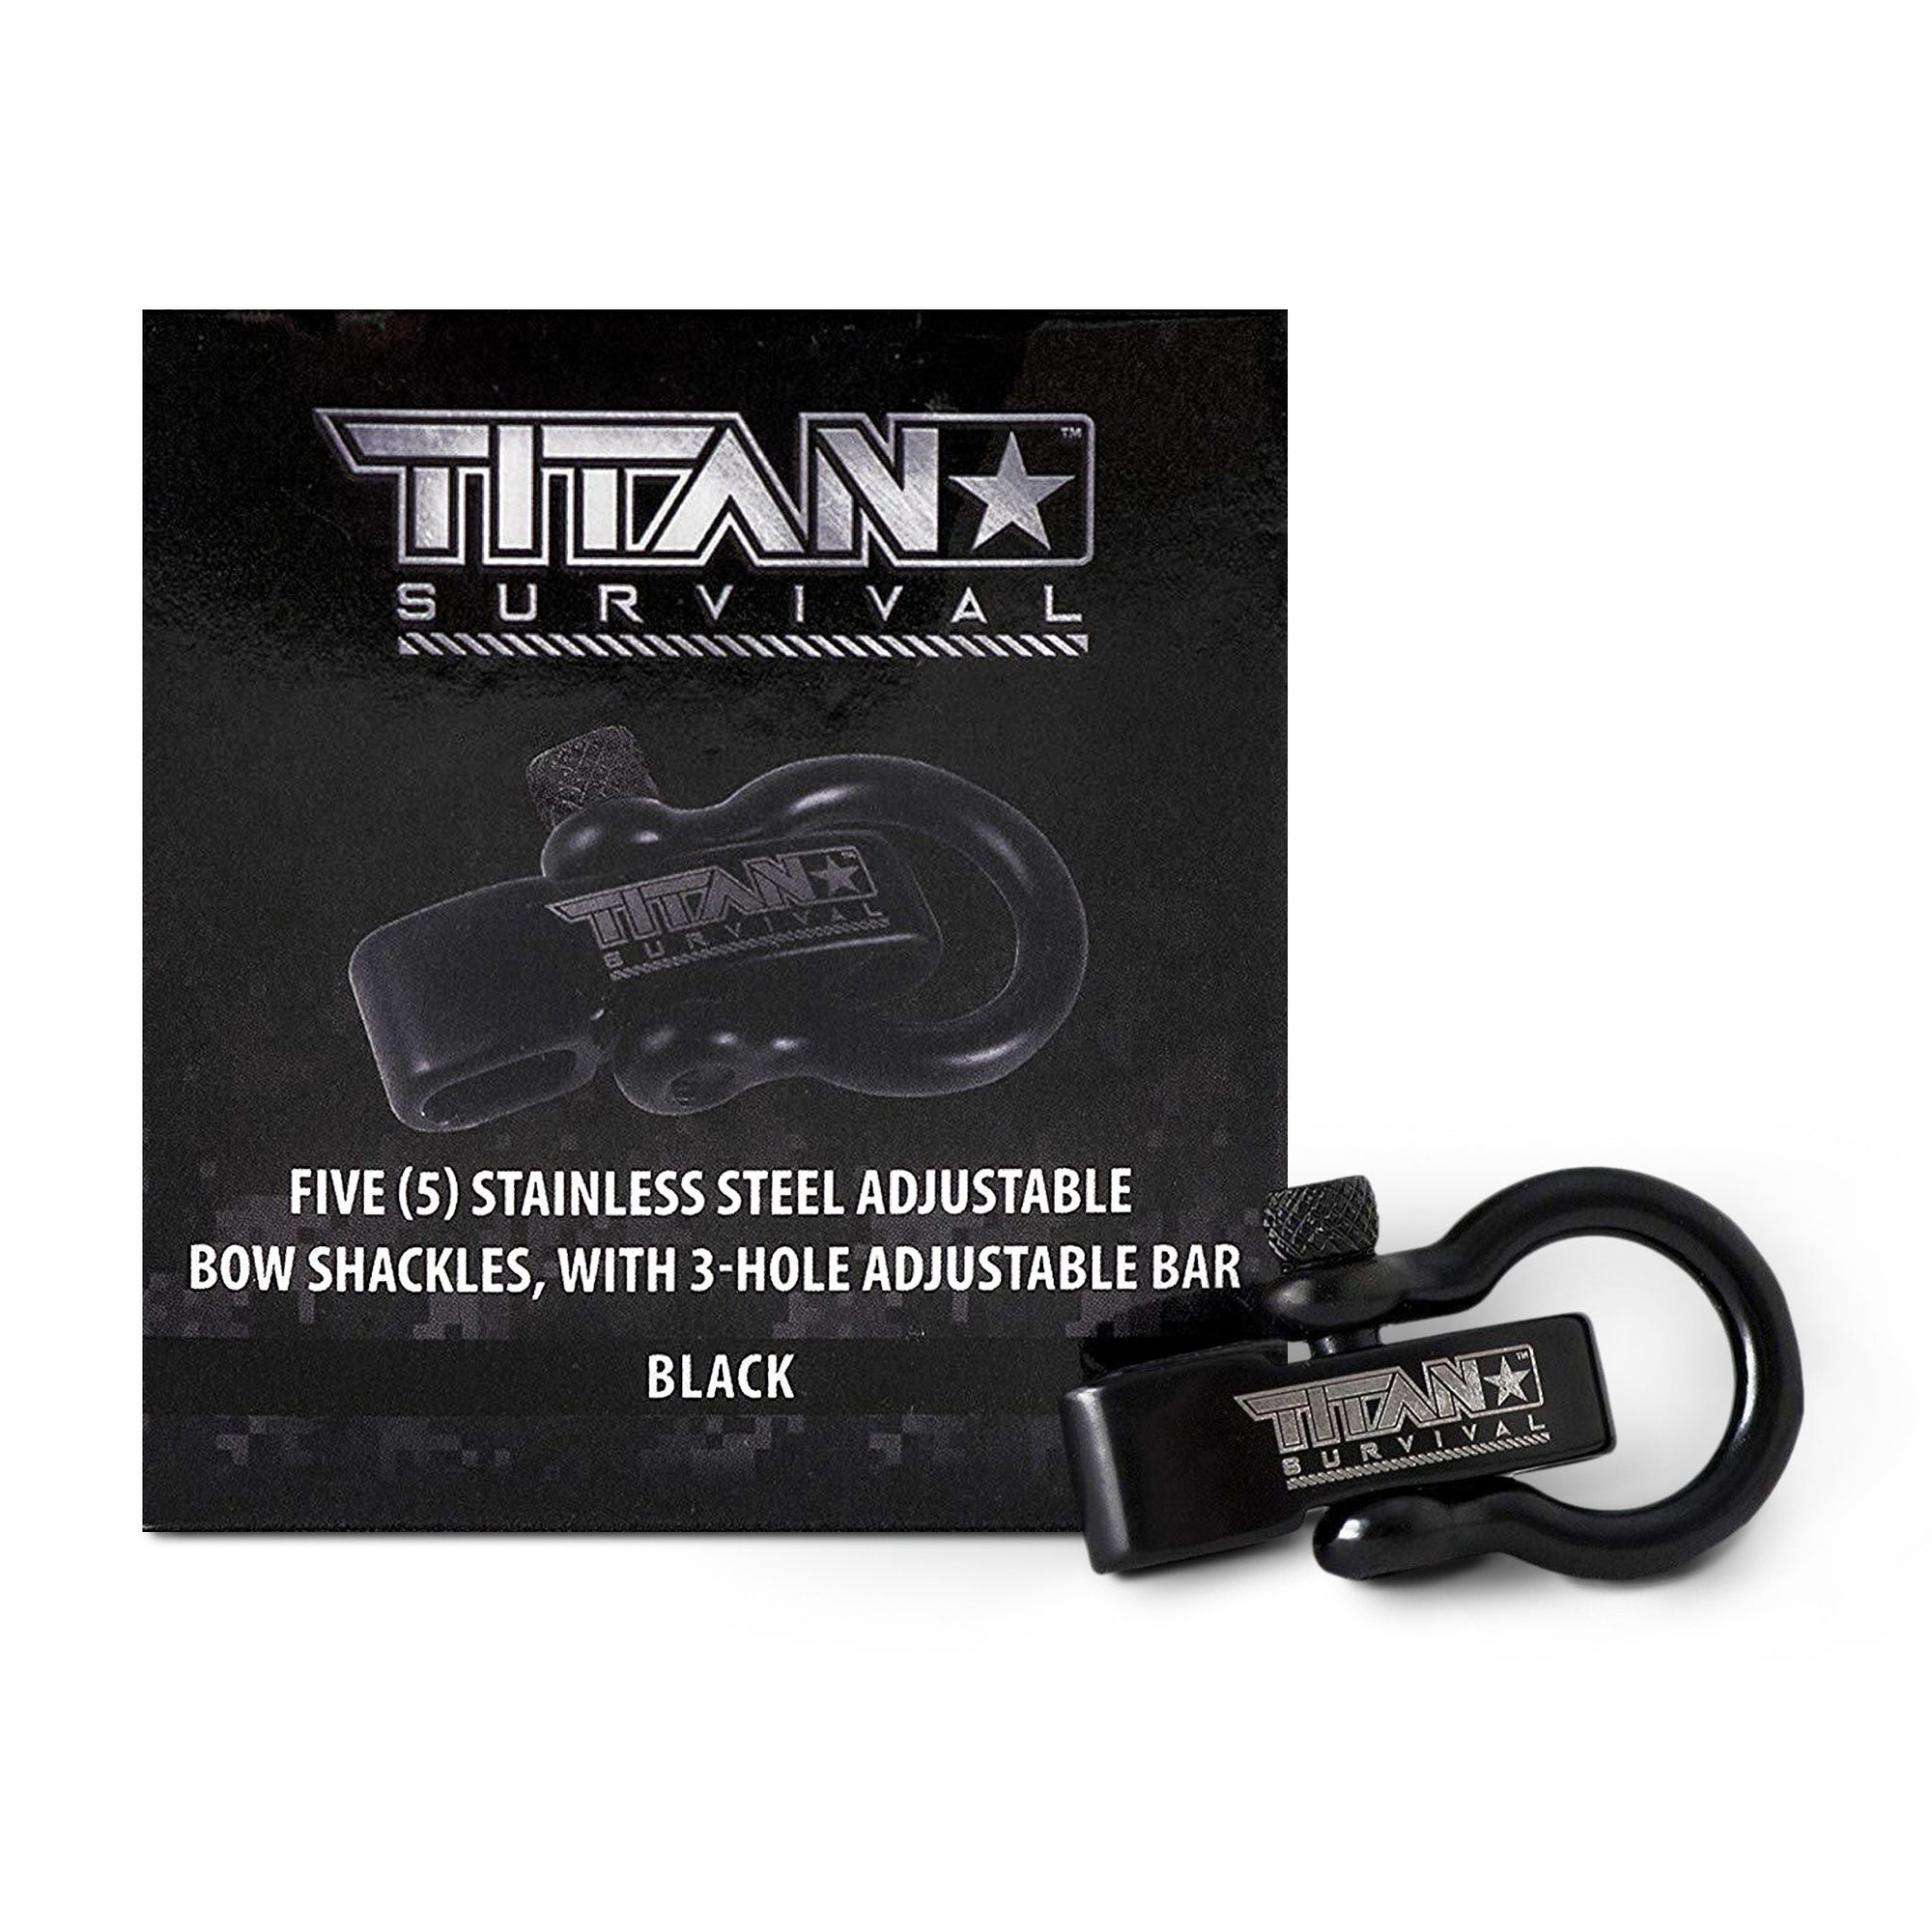 Stainless Steel Bow Shackles, 5-Pack | BLACK Accessories TITAN Survival